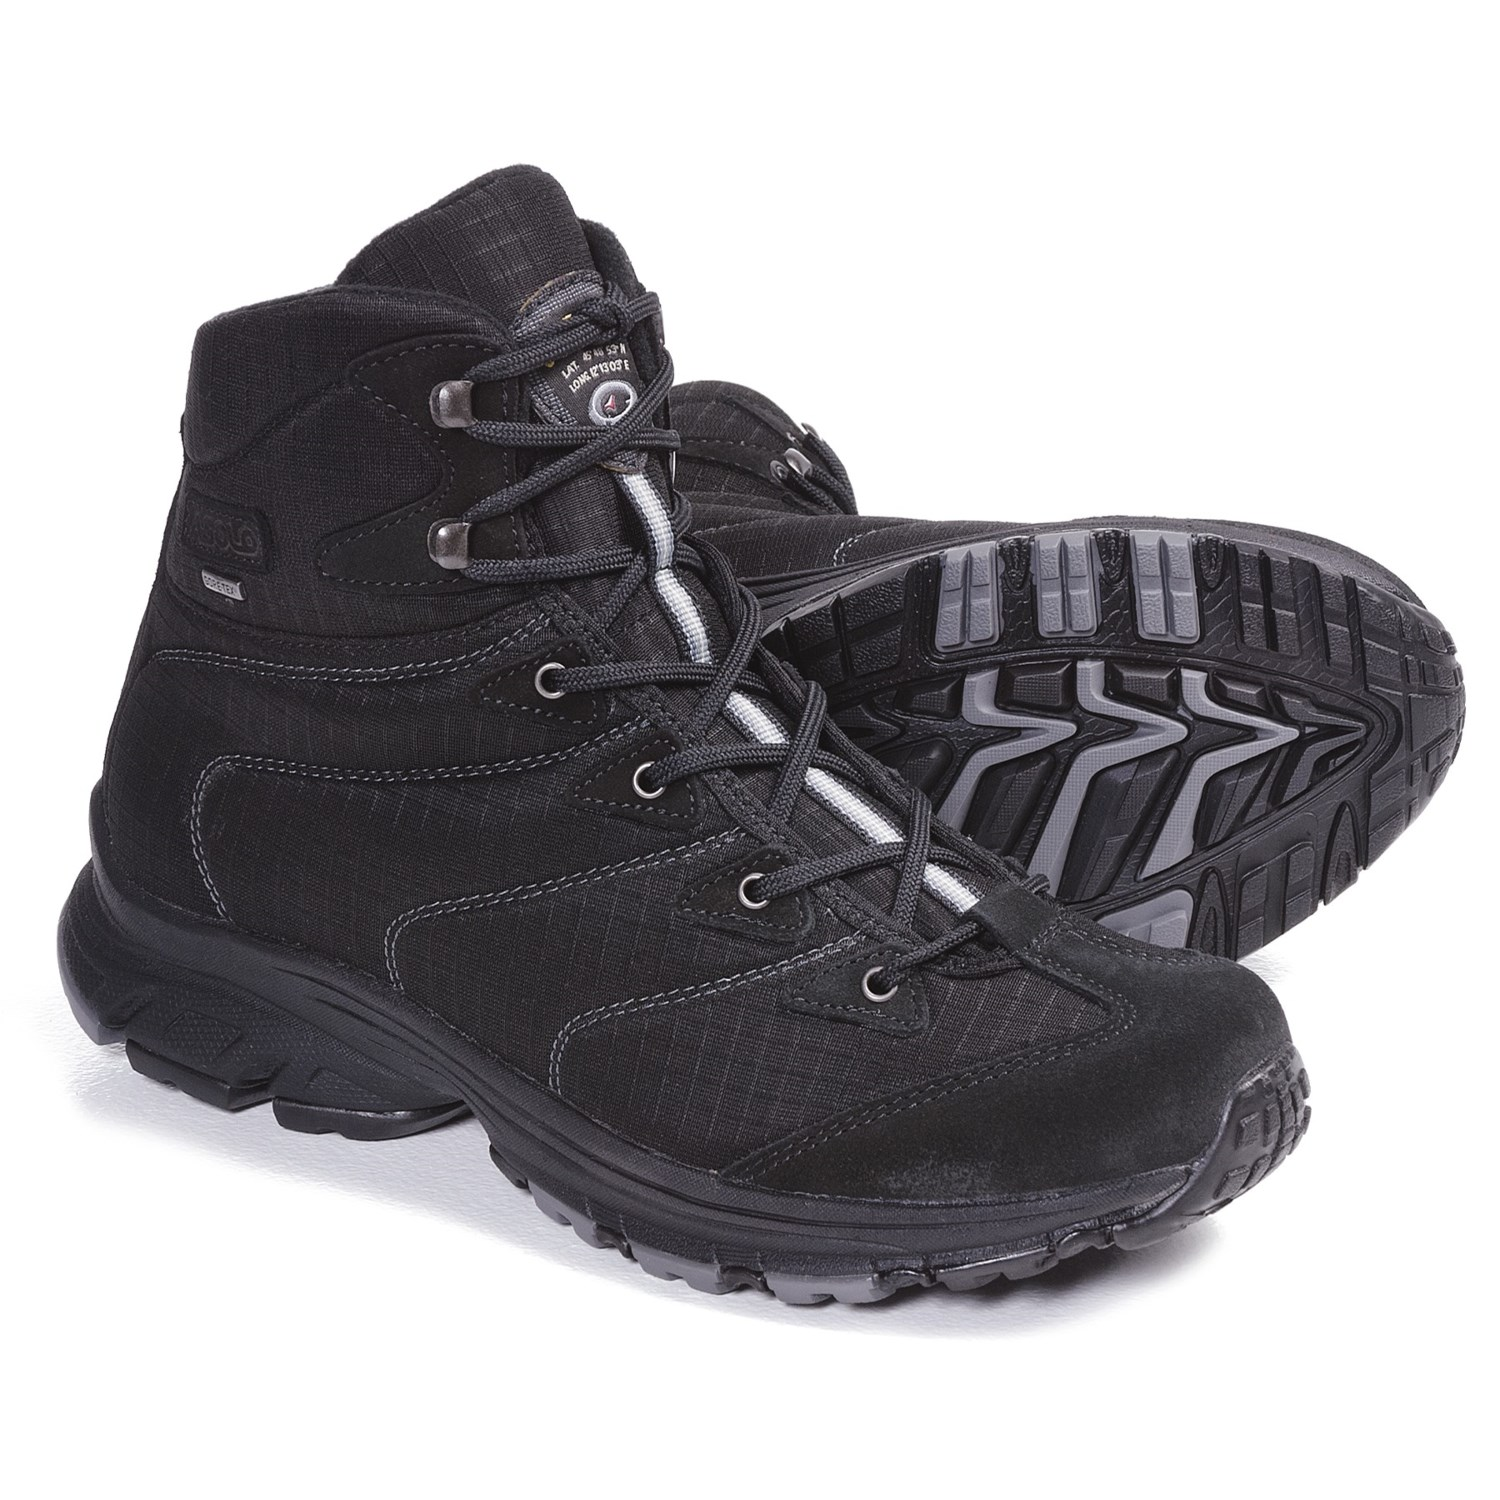 Original Diemme Roccia Vet Leather Hiking Boots In Black  Save 31  Lyst